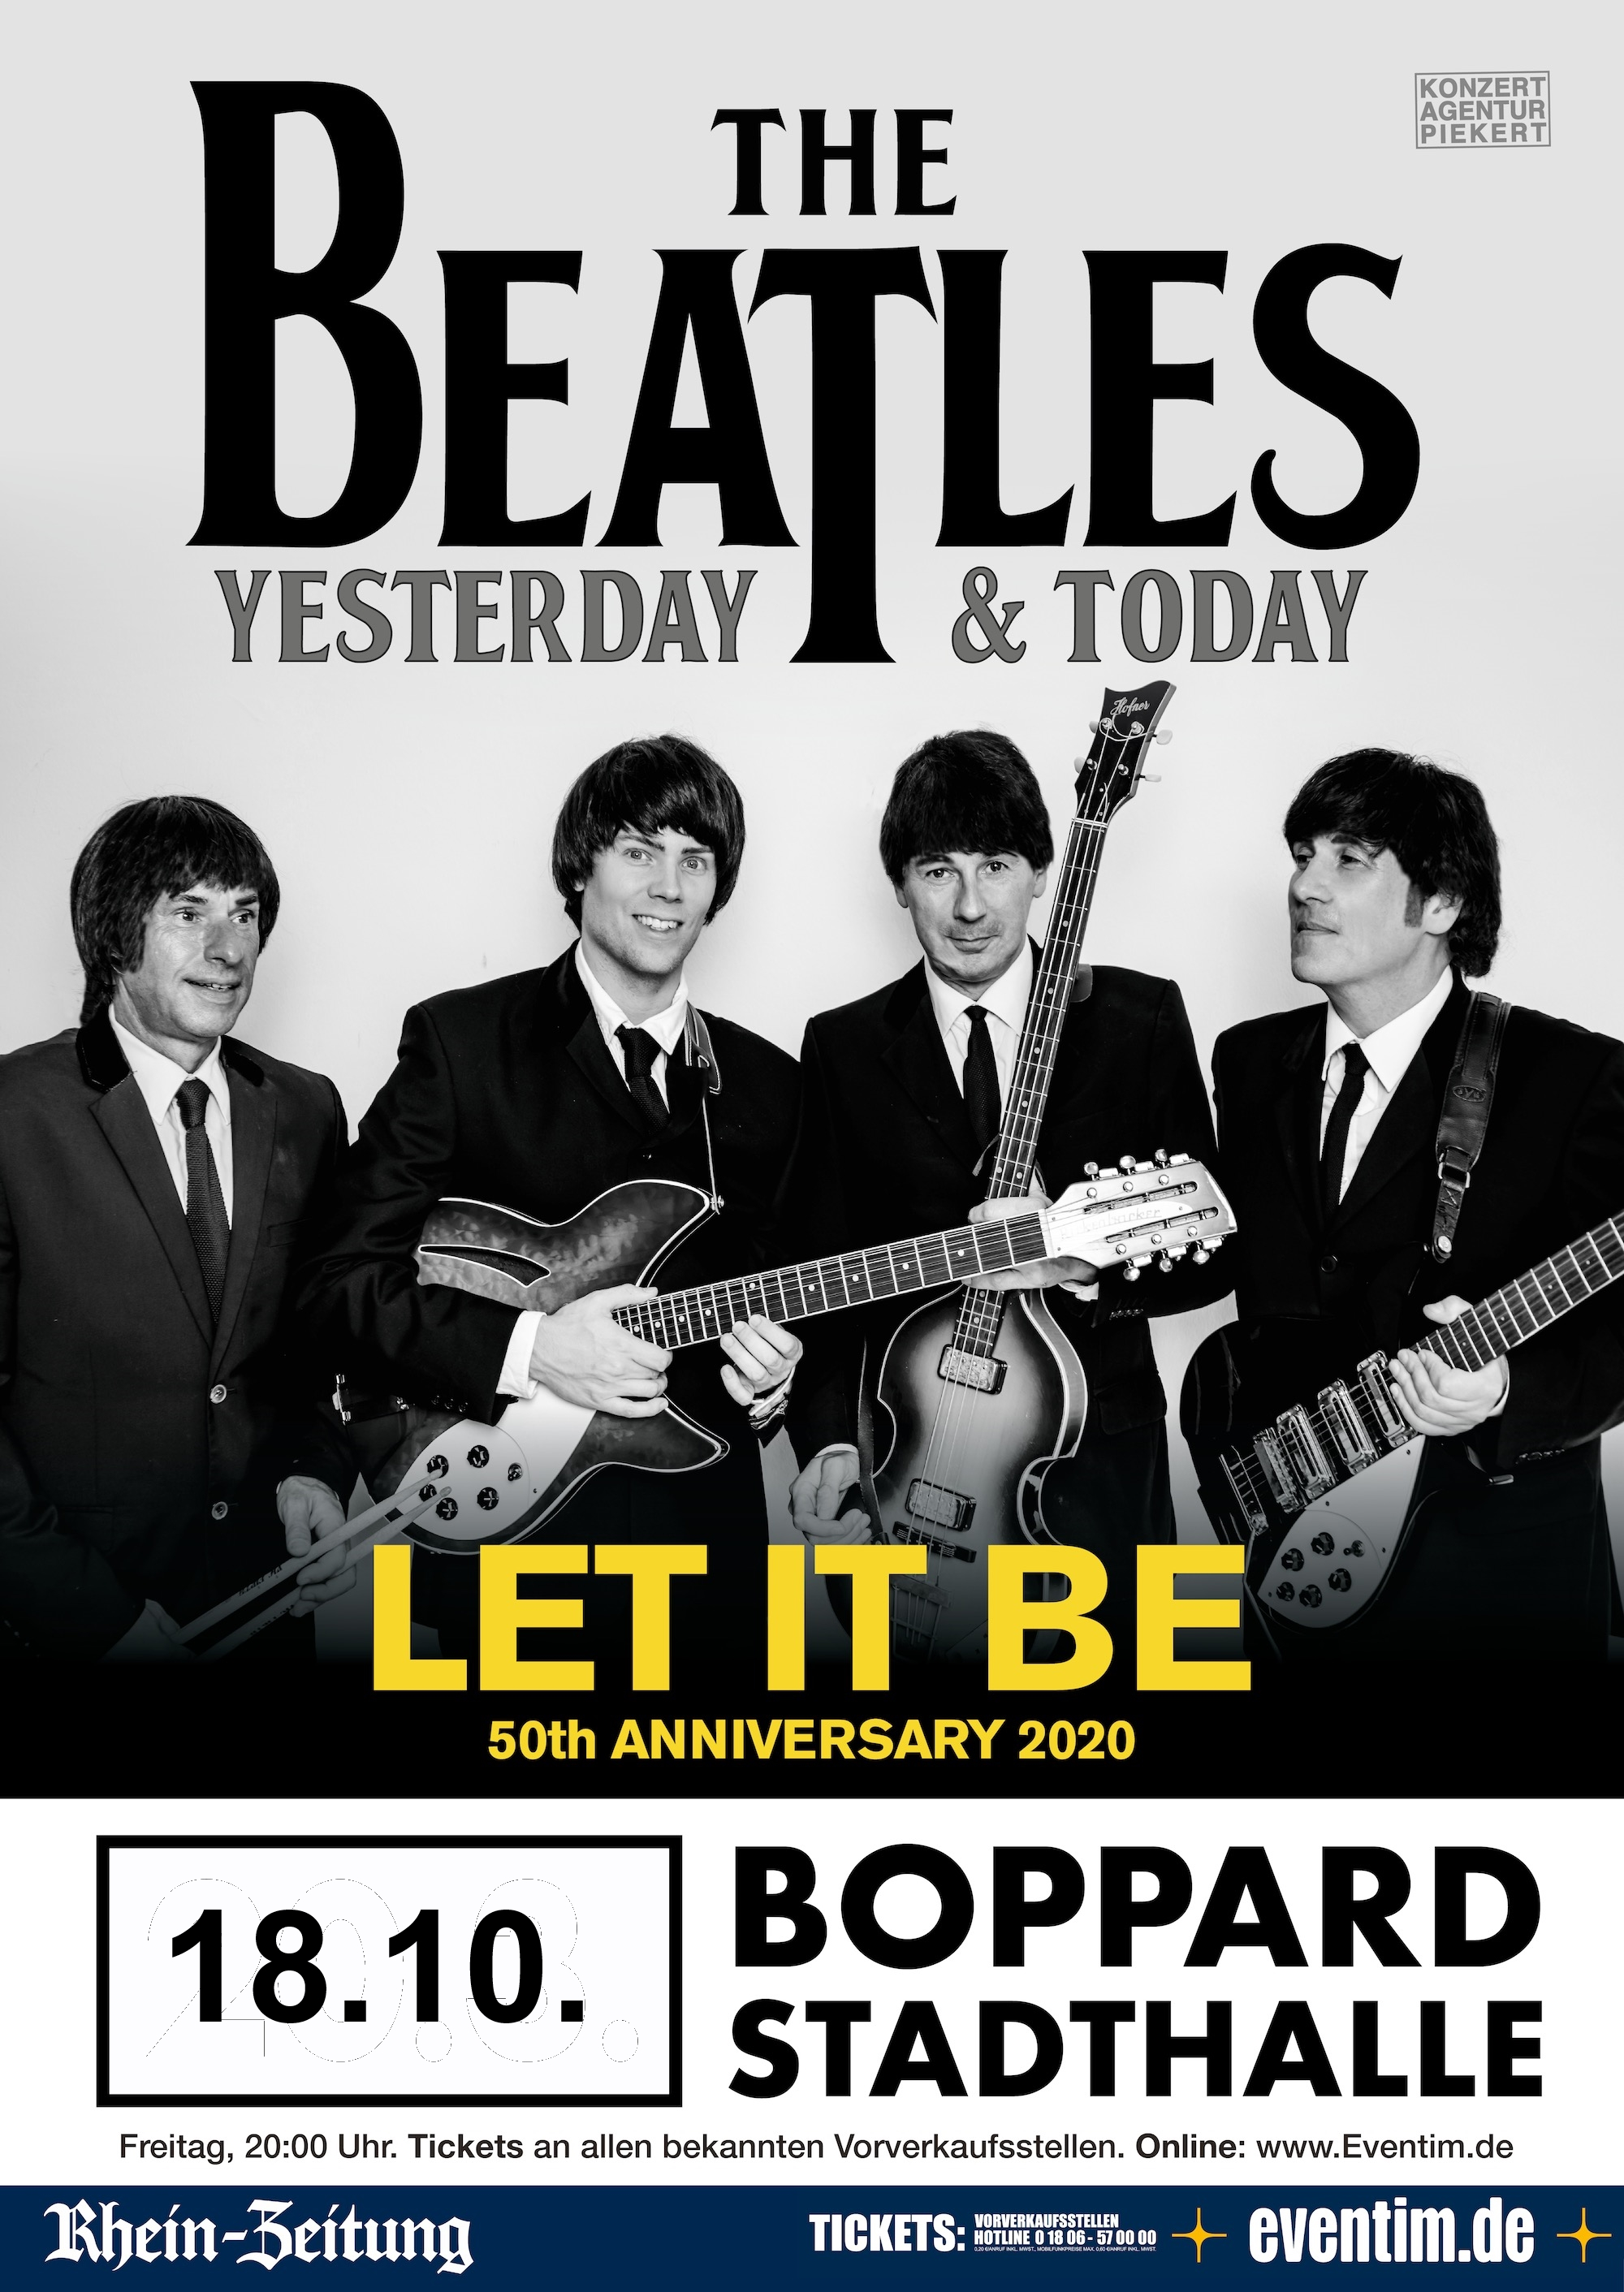 THE BEATLES - YESTERDAY & TODAY LET IT BE - 50th Anniversary Tour 2020